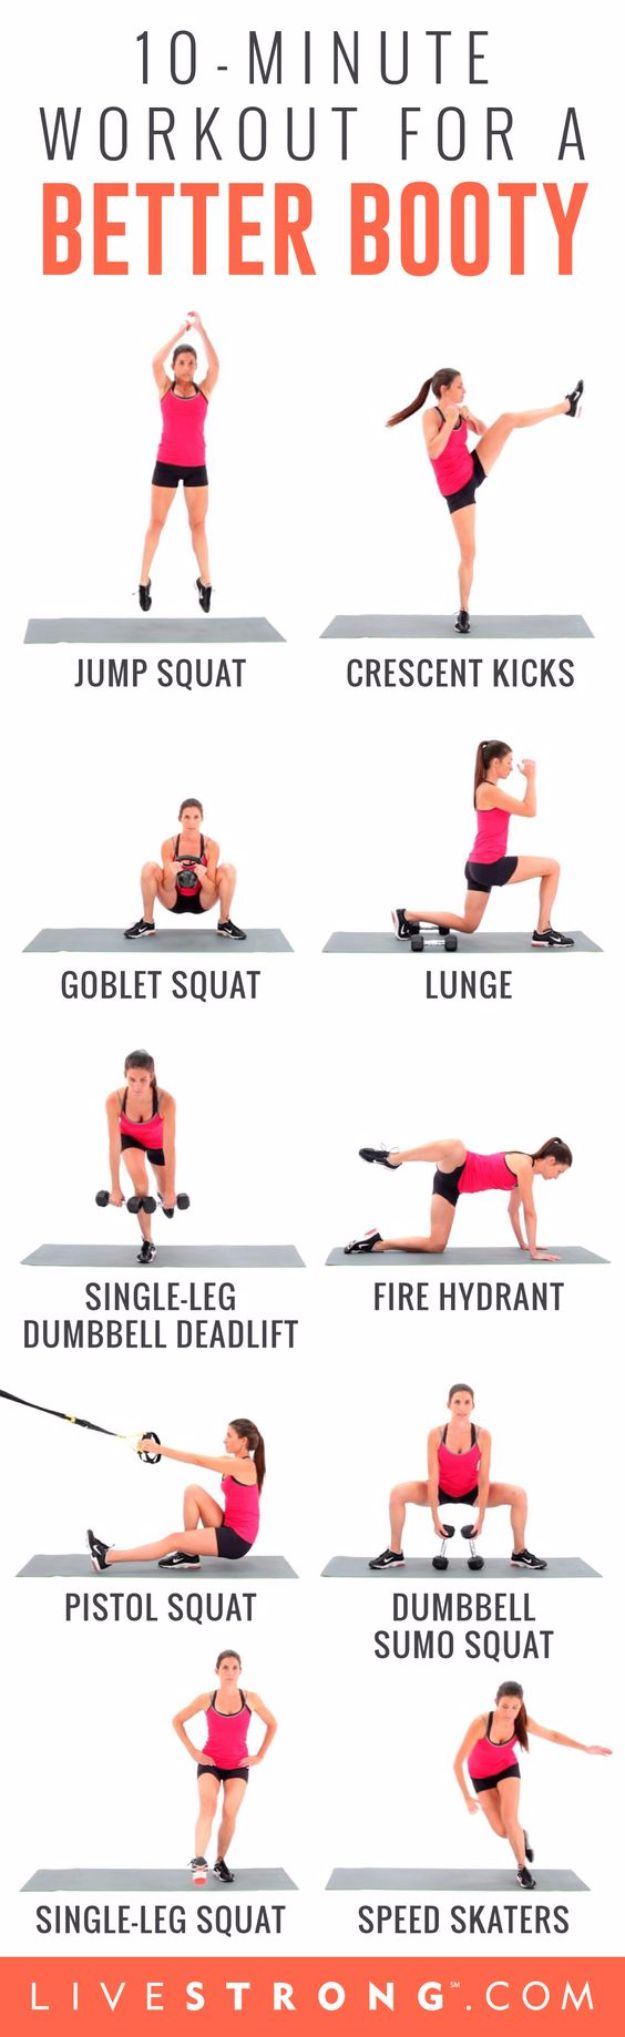 Best Quick At Home Workouts - 10-Minute Workout for a Better Booty - Easy Tutorials and Work Out Ideas for Strength Training and Exercises - Step by Step Tutorials for Butt Workouts, Abs Tummy and Stomach, Legs, Arms, Chest and Back - Fast 5 and 10 Minute Workouts You Can Do On Your Lunch Break, In Car, in Hotel #exercise #health